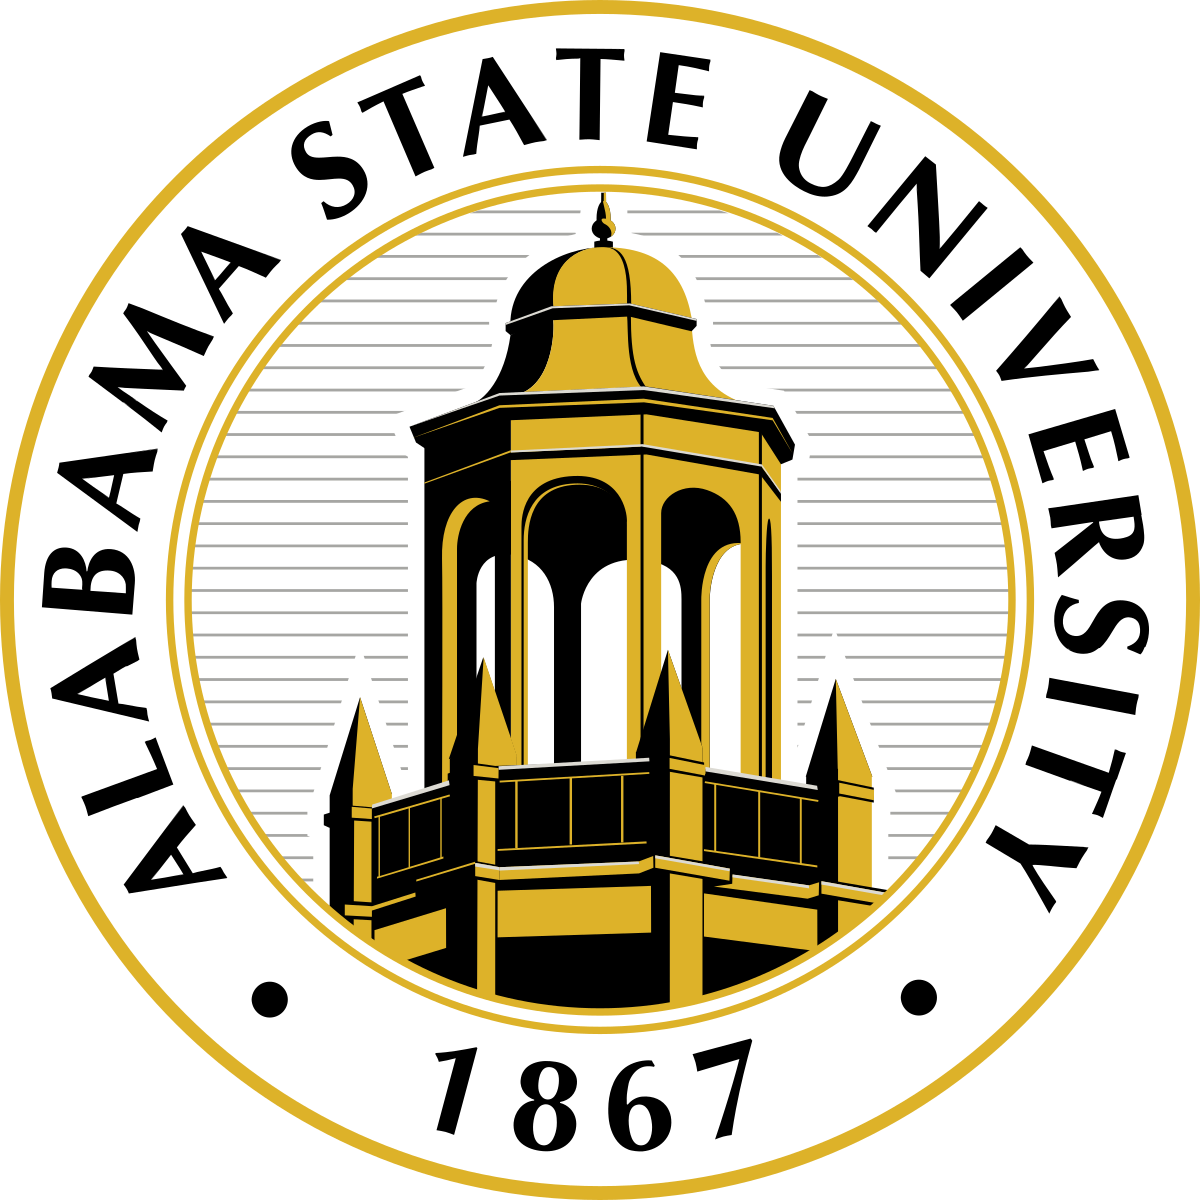 University of alabama integration clipart clipart royalty free library Alabama State University - Wikipedia clipart royalty free library